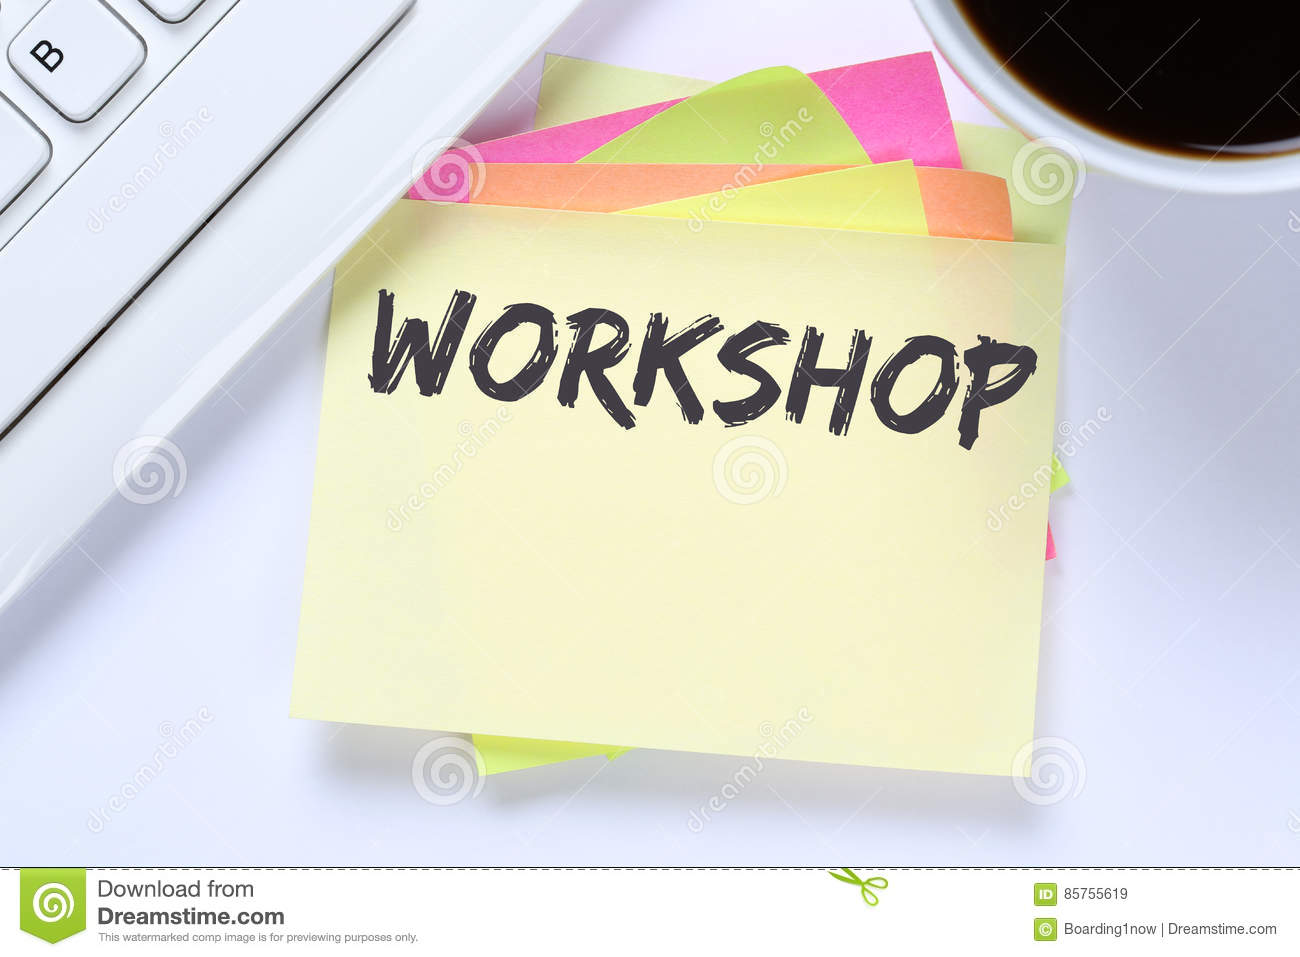 Workshop training learning teaching seminar education business i